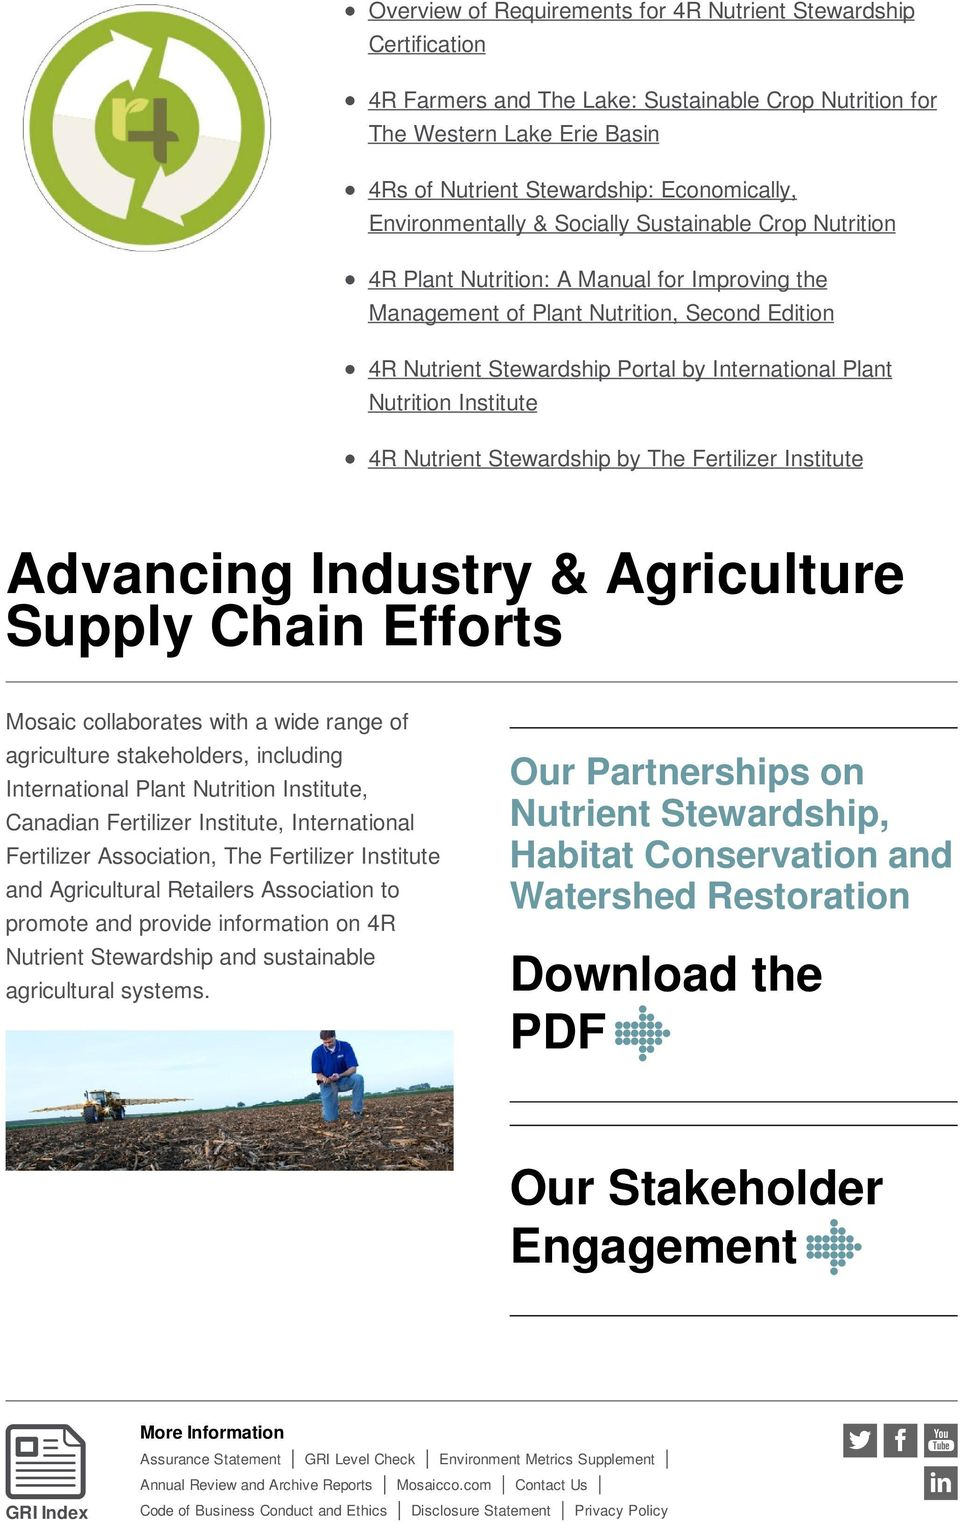 Plant Nutrition Institute 4R Nutrient Stewardship by The Fertilizer Institute Advancing Industry & Agriculture Supply Chain Efforts Mosaic collaborates with a wide range of agriculture stakeholders,